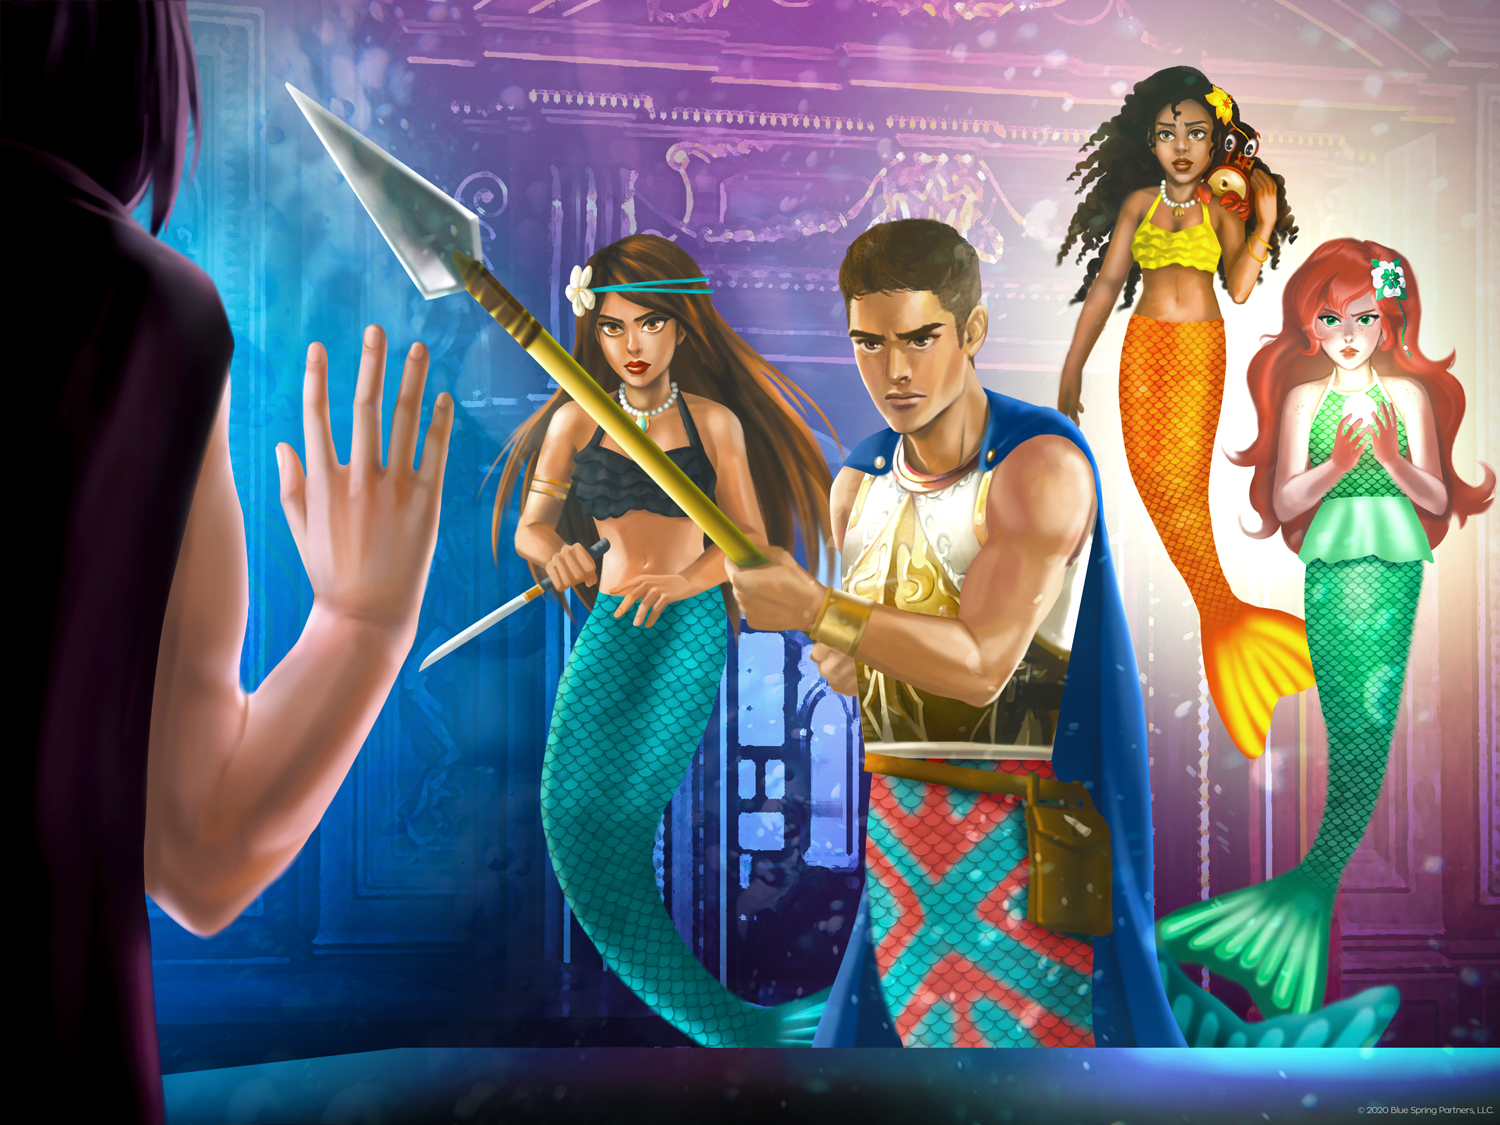 Mermaidens Mariana, Brynn, and Destiny confronting Damon